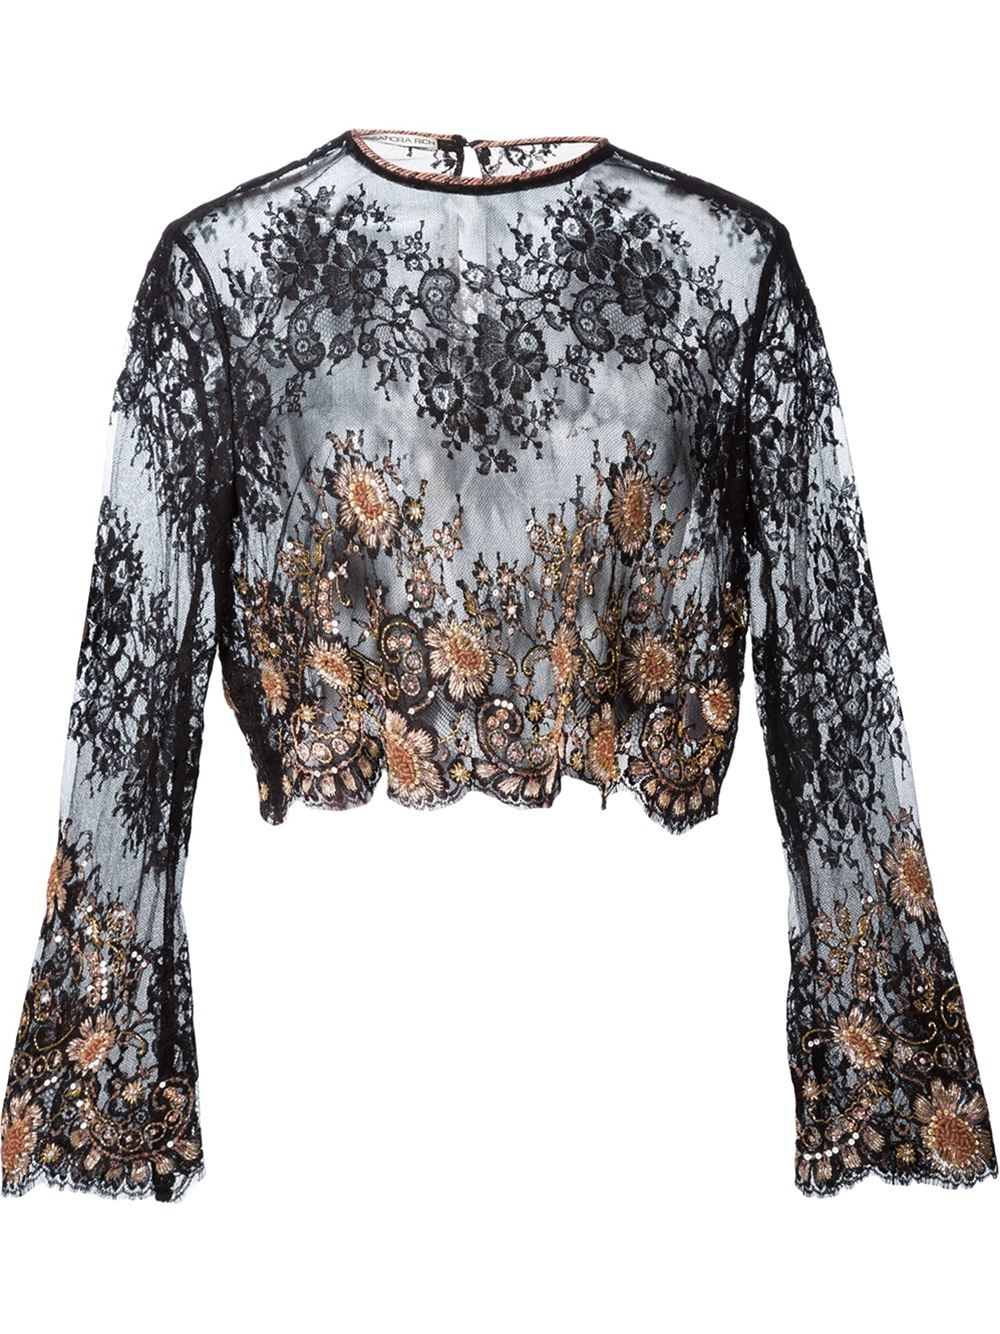 Cheap Really Free Shipping Perfect SHIRTS - Blouses Alessandra Rich Cheap Best Store To Get Outlet Choice SH9Jn9TGG